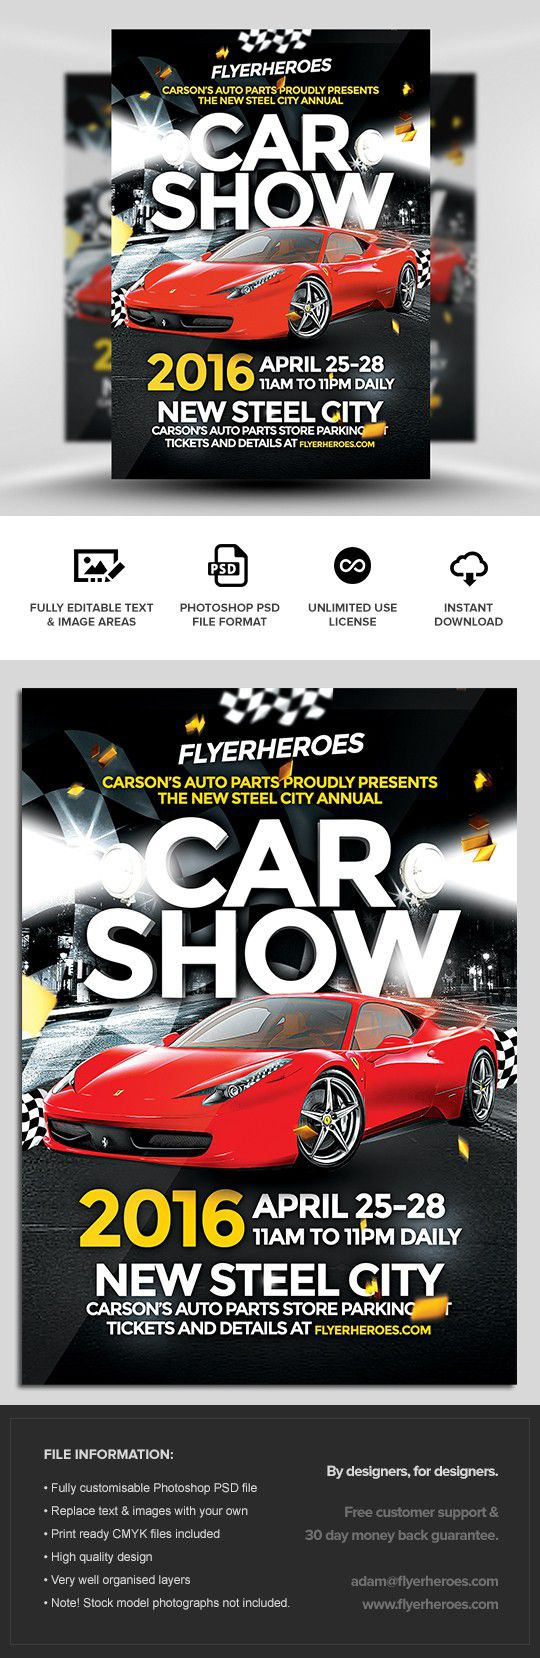 005 Frightening Free Car Show Flyer Template Inspiration  Psd And BikeFull